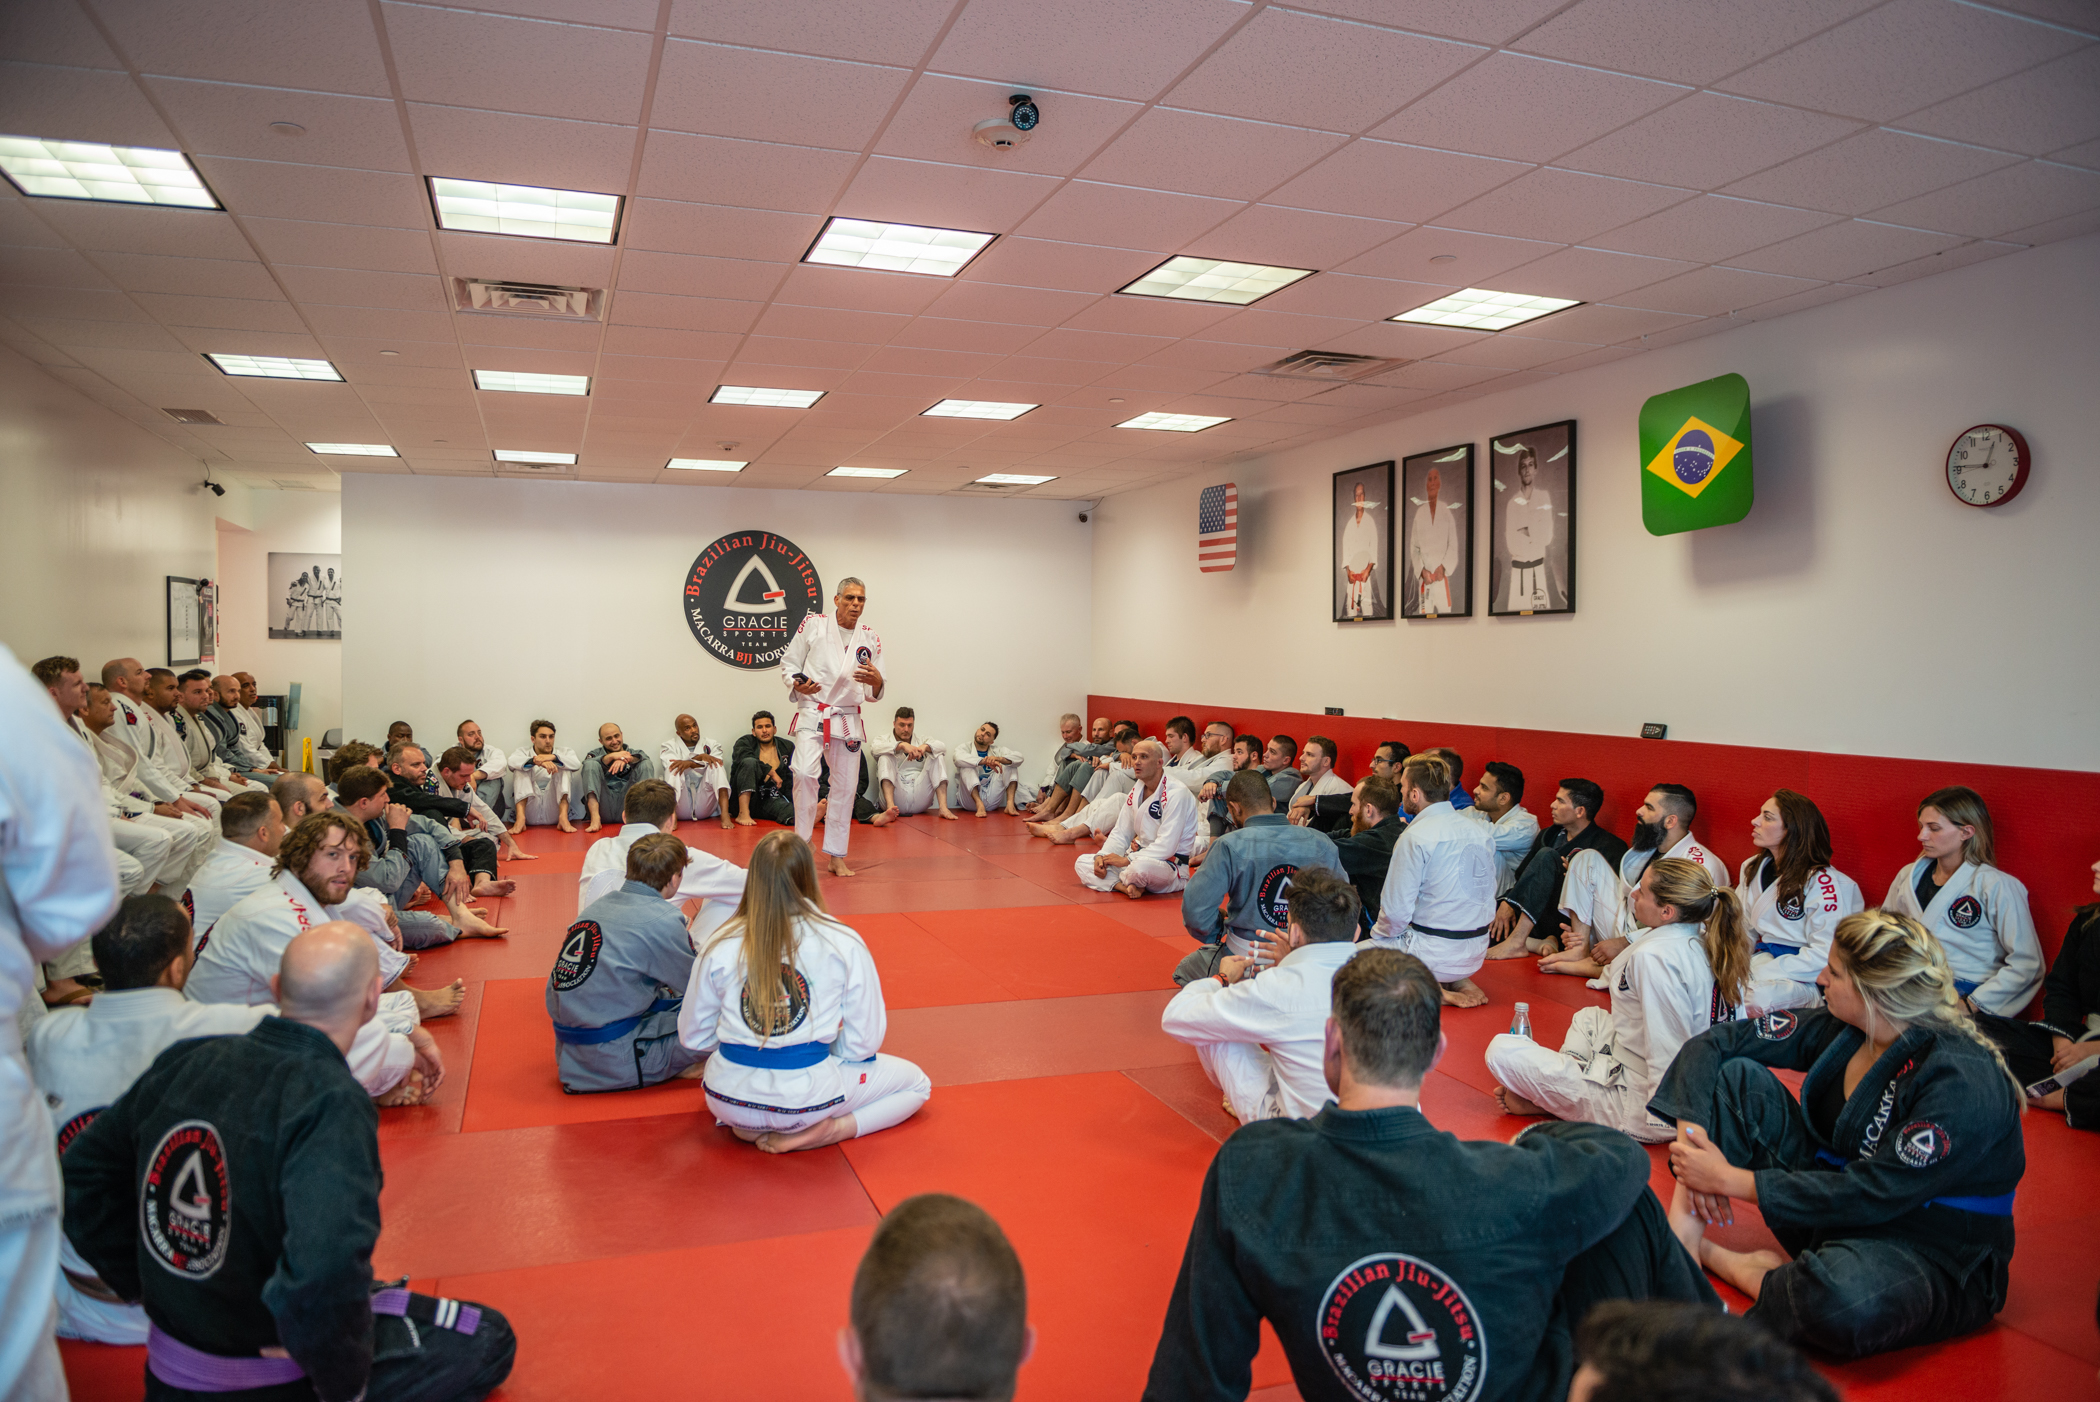 Gracie-Sports-Adult-Ceremony-11-1.jpg